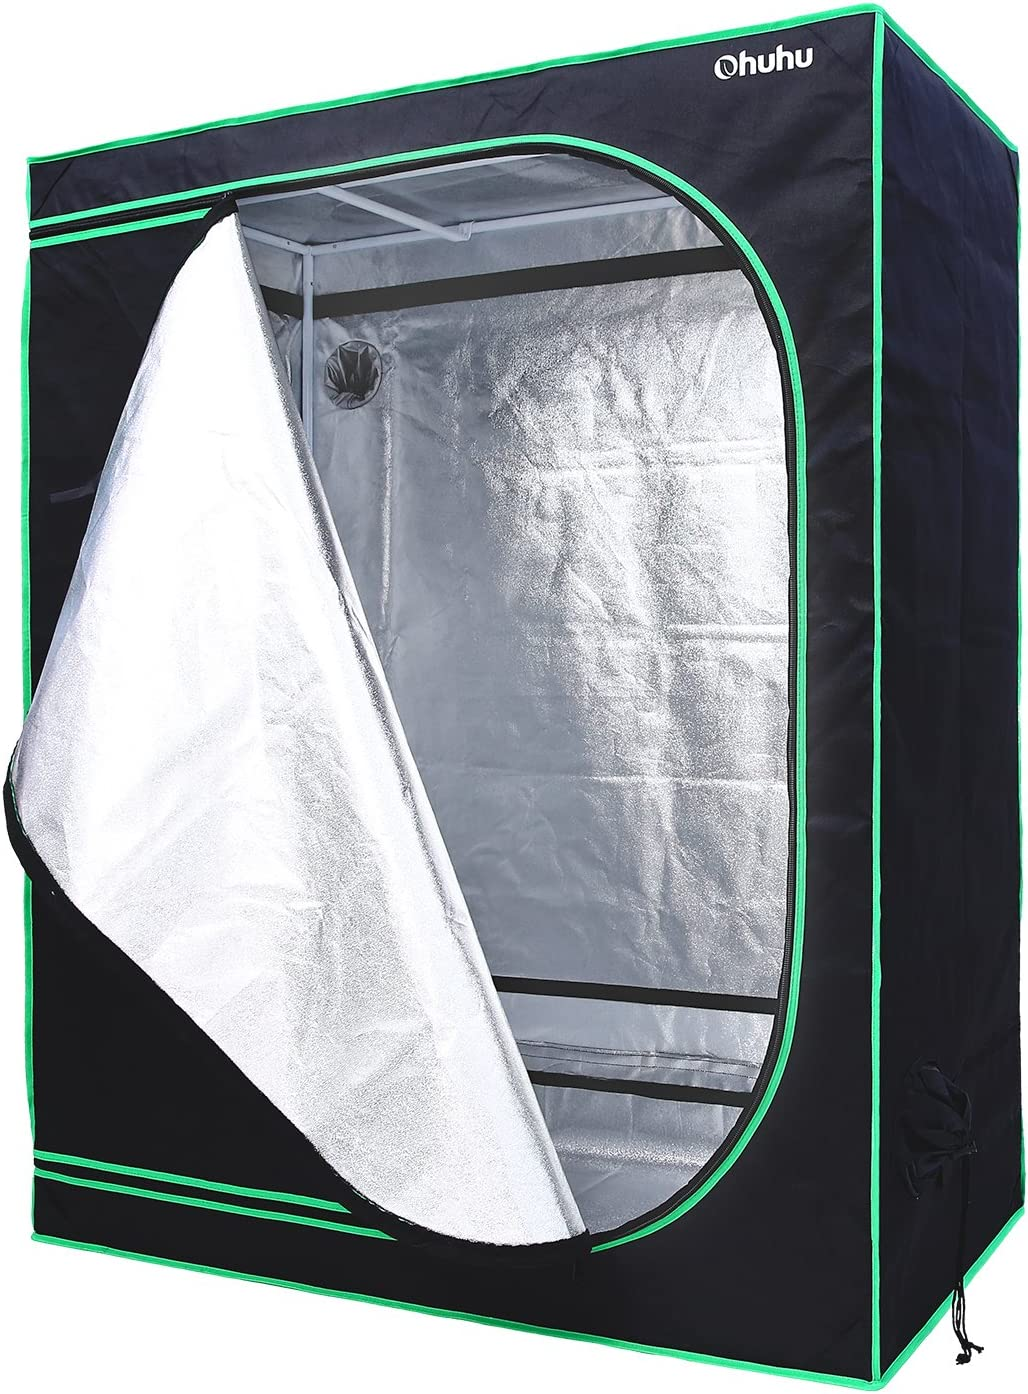 Best sellers  sc 1 st  Amazon.com & Plant Growing Tents | Amazon.com